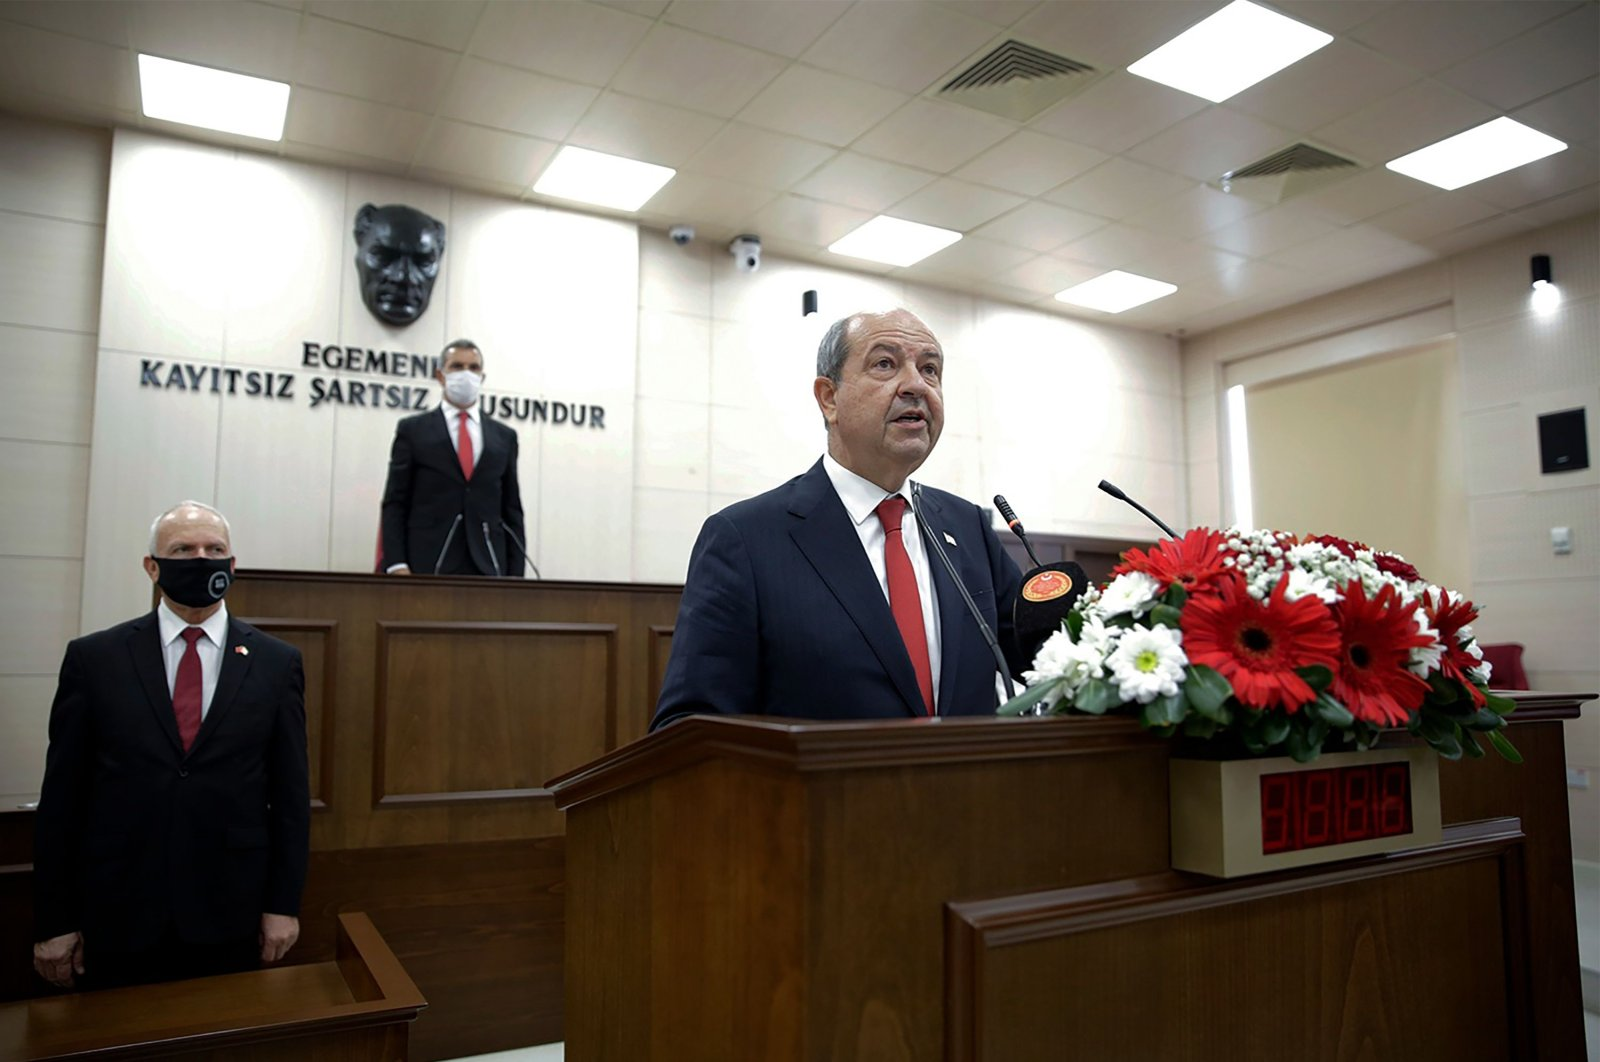 Ersin Tatar, the newly-elected Turkish Cypriot President, speaks during the oath-taking ceremony at the parliament headquarters in Lefkoşa (Nicosia), Oct. 23, 2020. (AFP Photo)